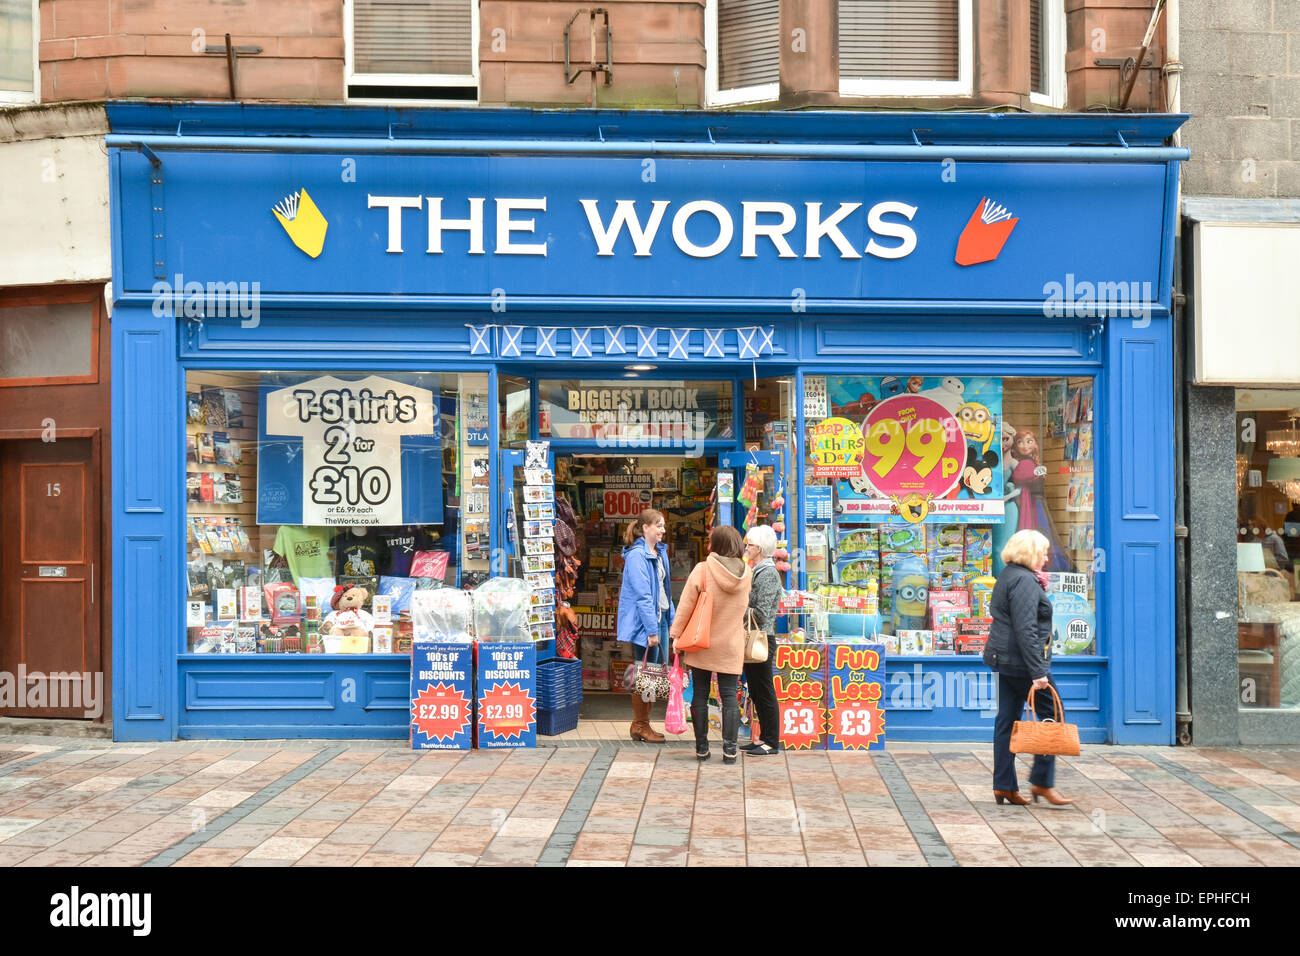 Customers outside The Works discount store, in Stirling City Centre, Scotland, UK - Stock Image